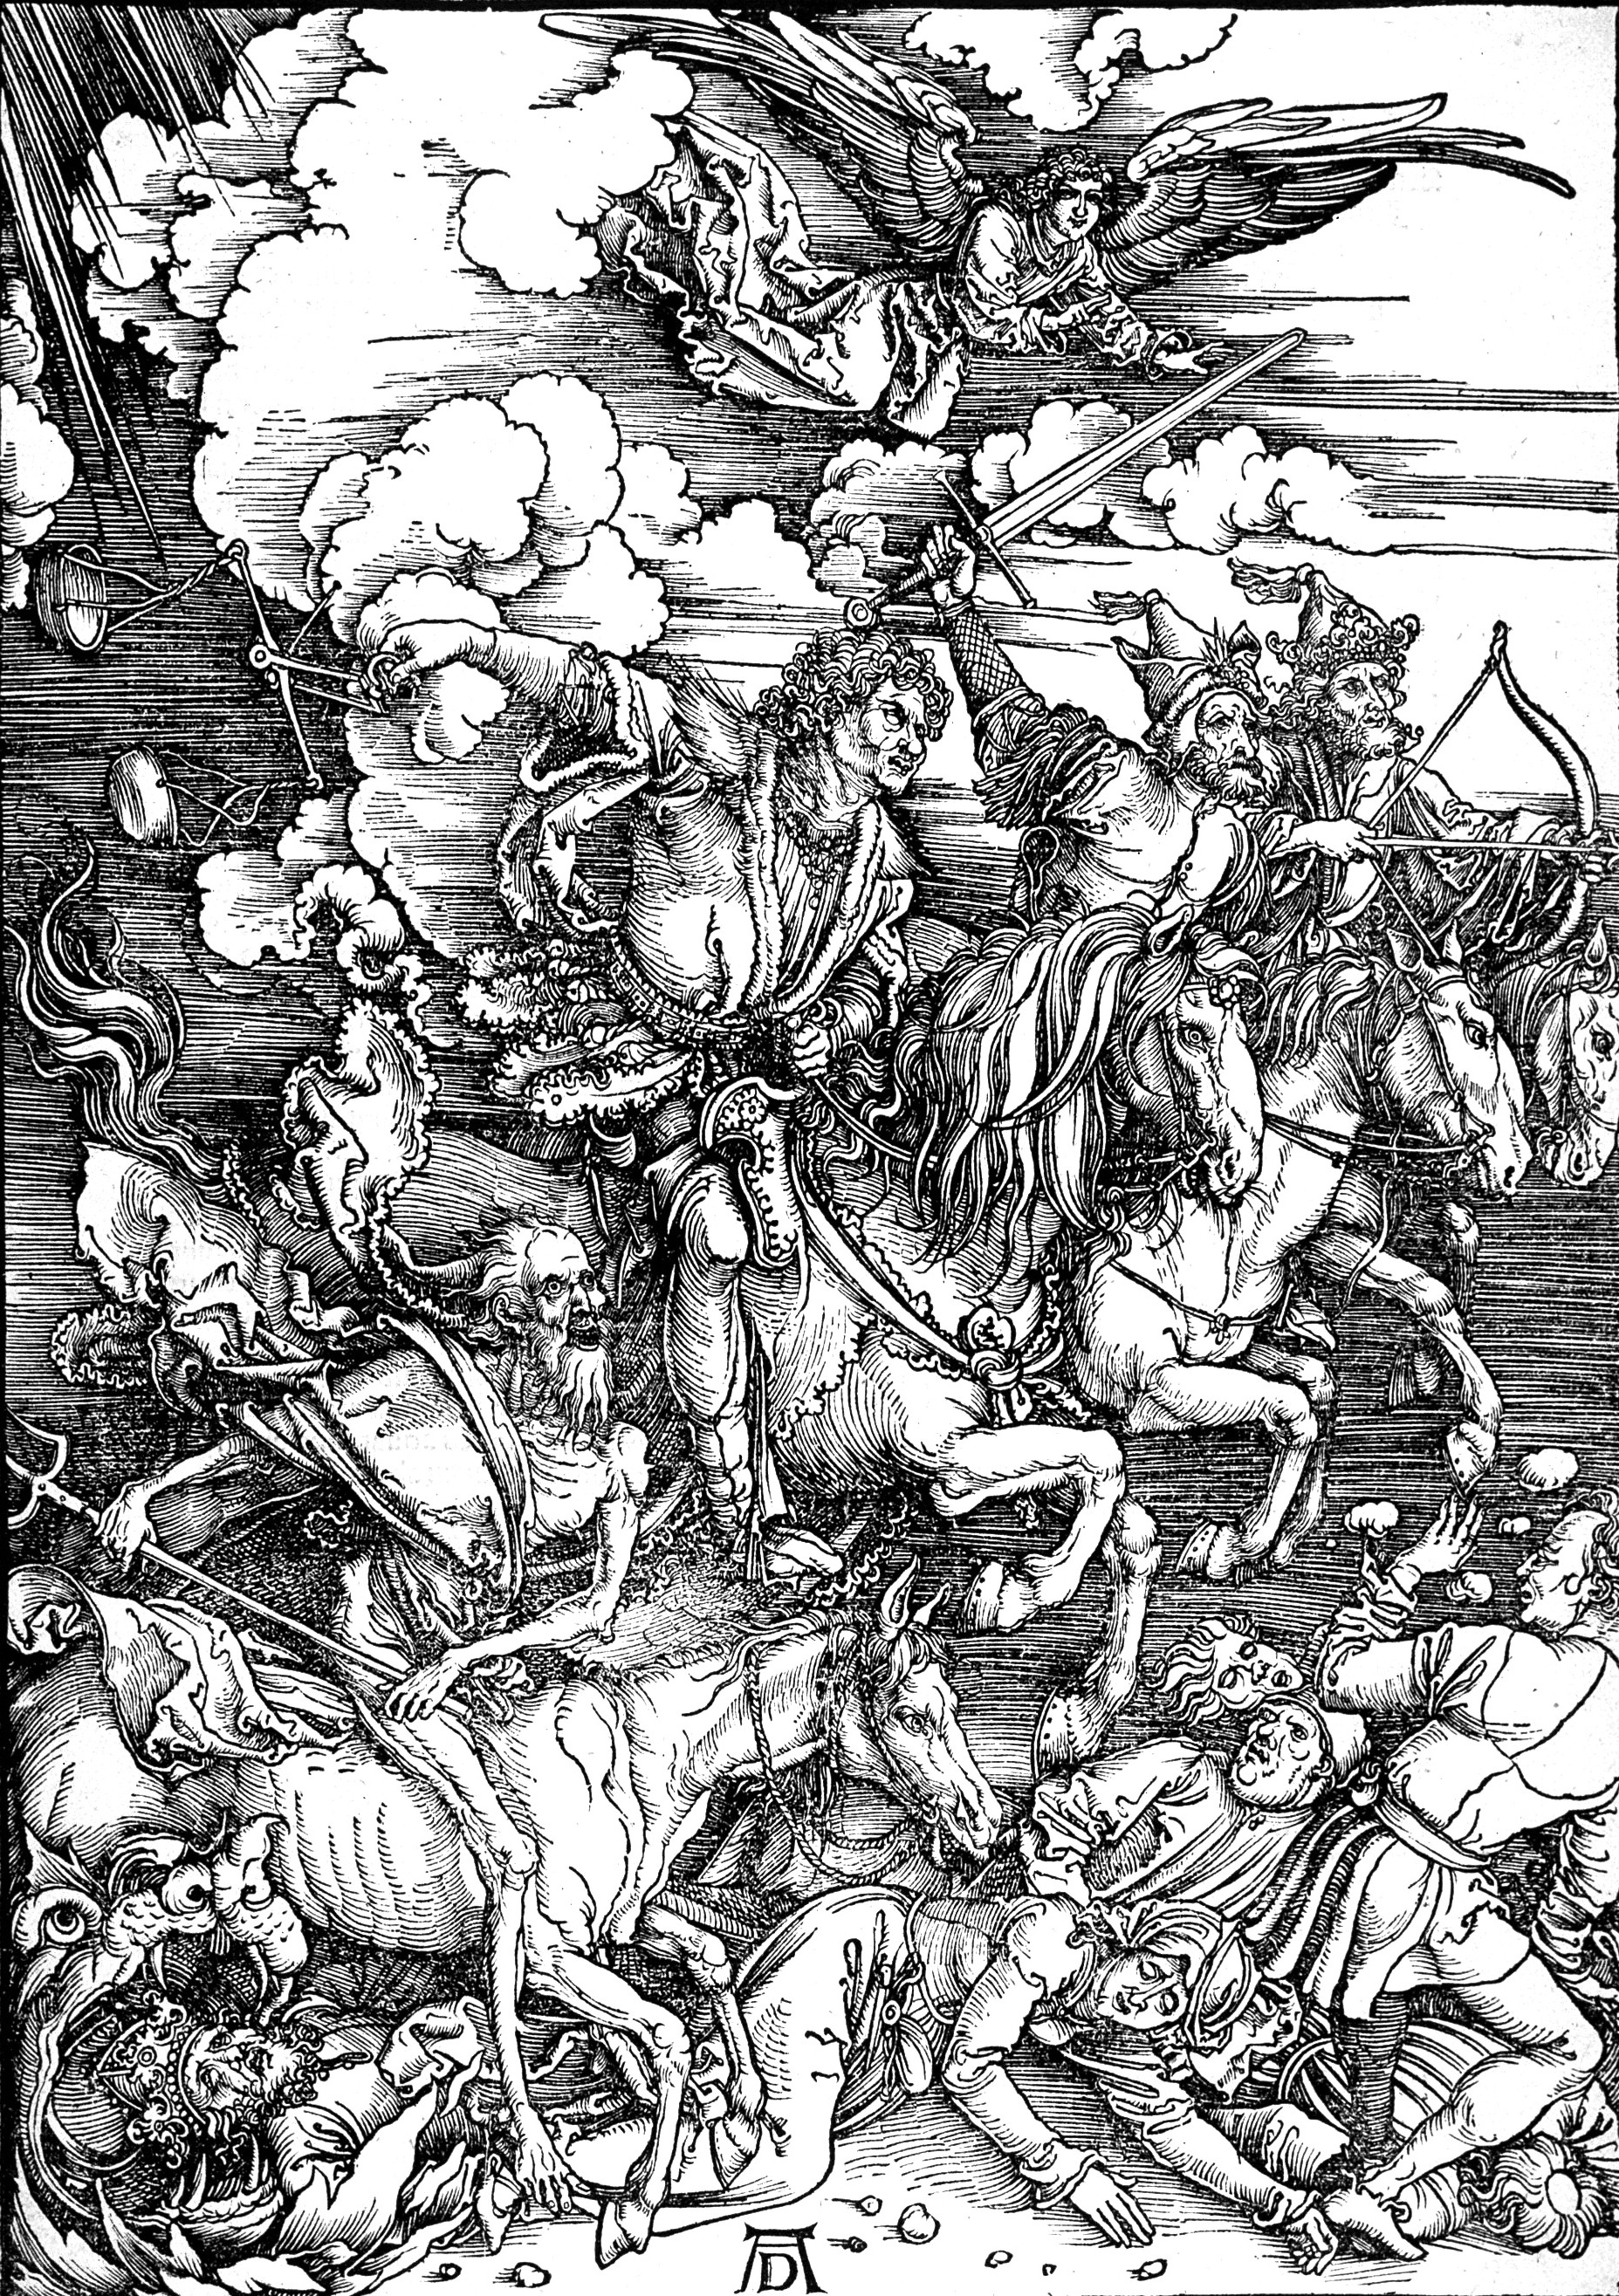 The Four Riders of the Apocalypse by Albrect Durer